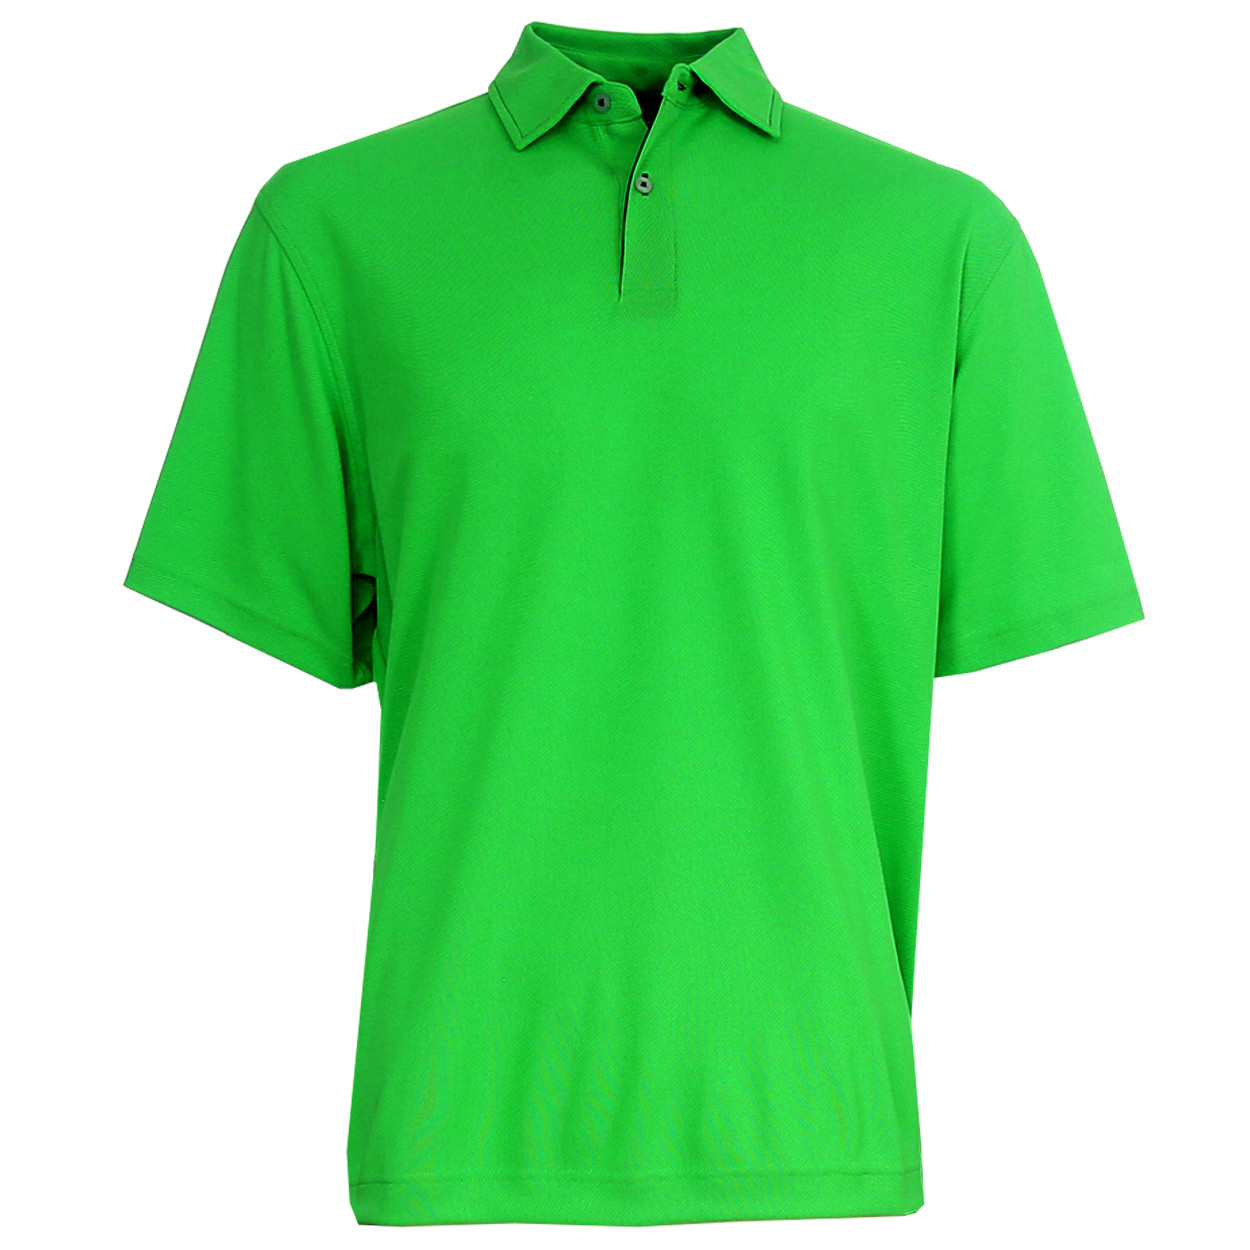 carnoustie performance solid pique polo golf shirt brand